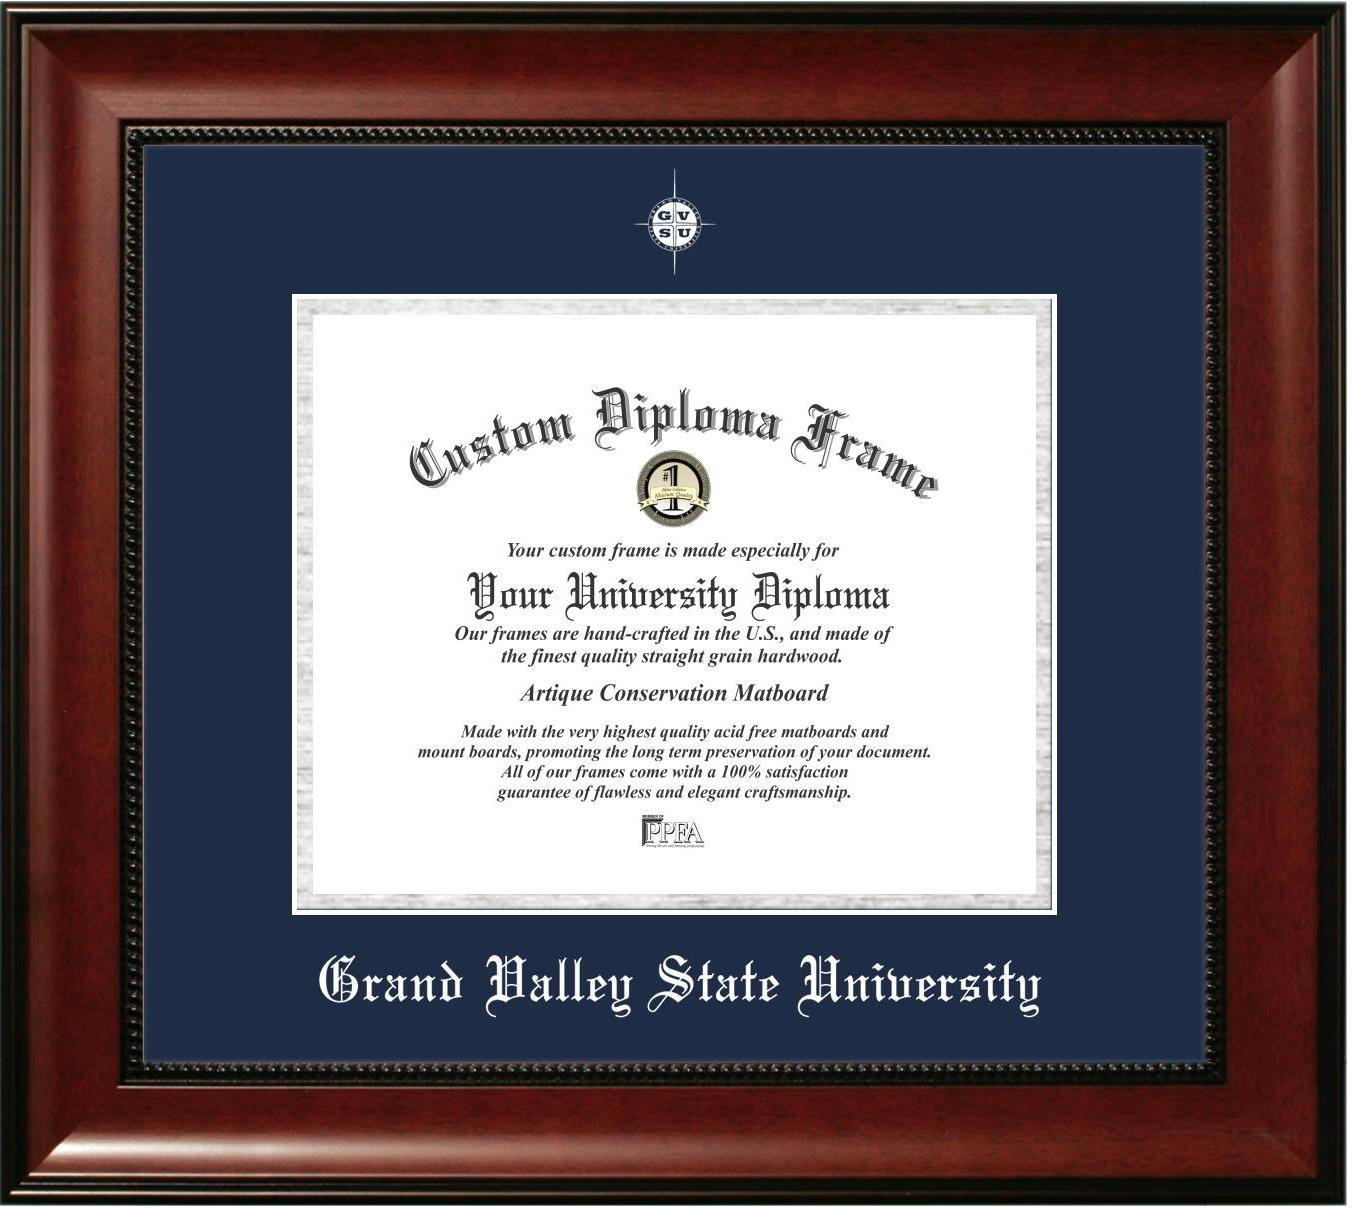 Grand Valley State University Graduation Diploma Frame